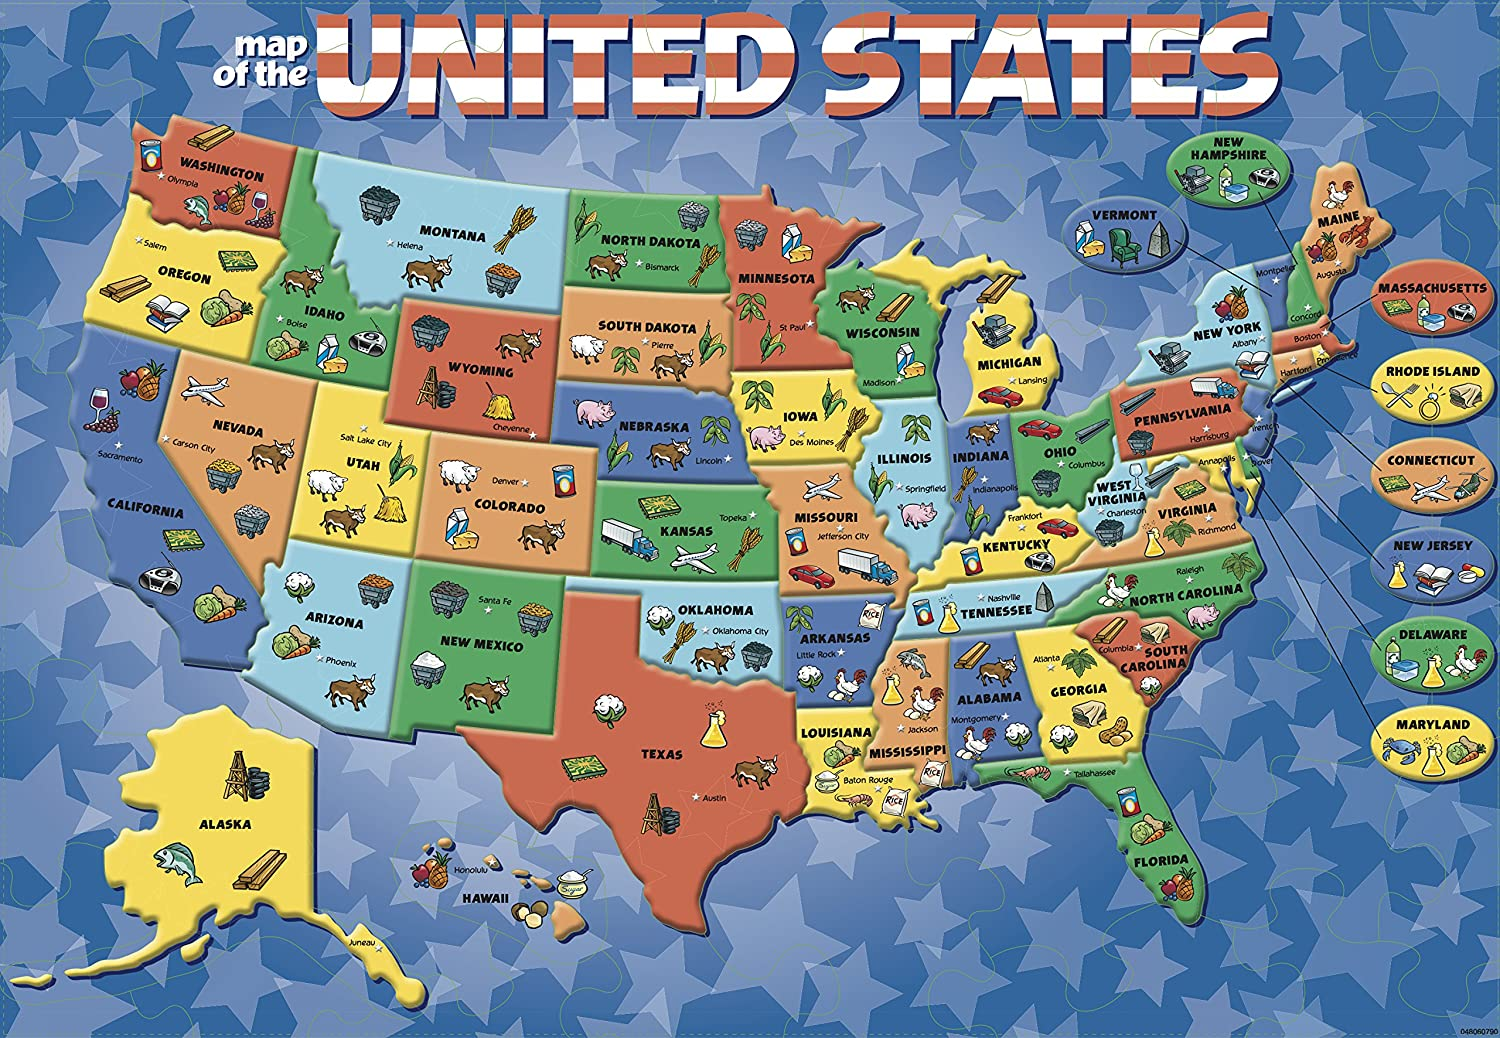 Amazon.com: Cardinal Industries USA Map Puzzle: Toys & Games